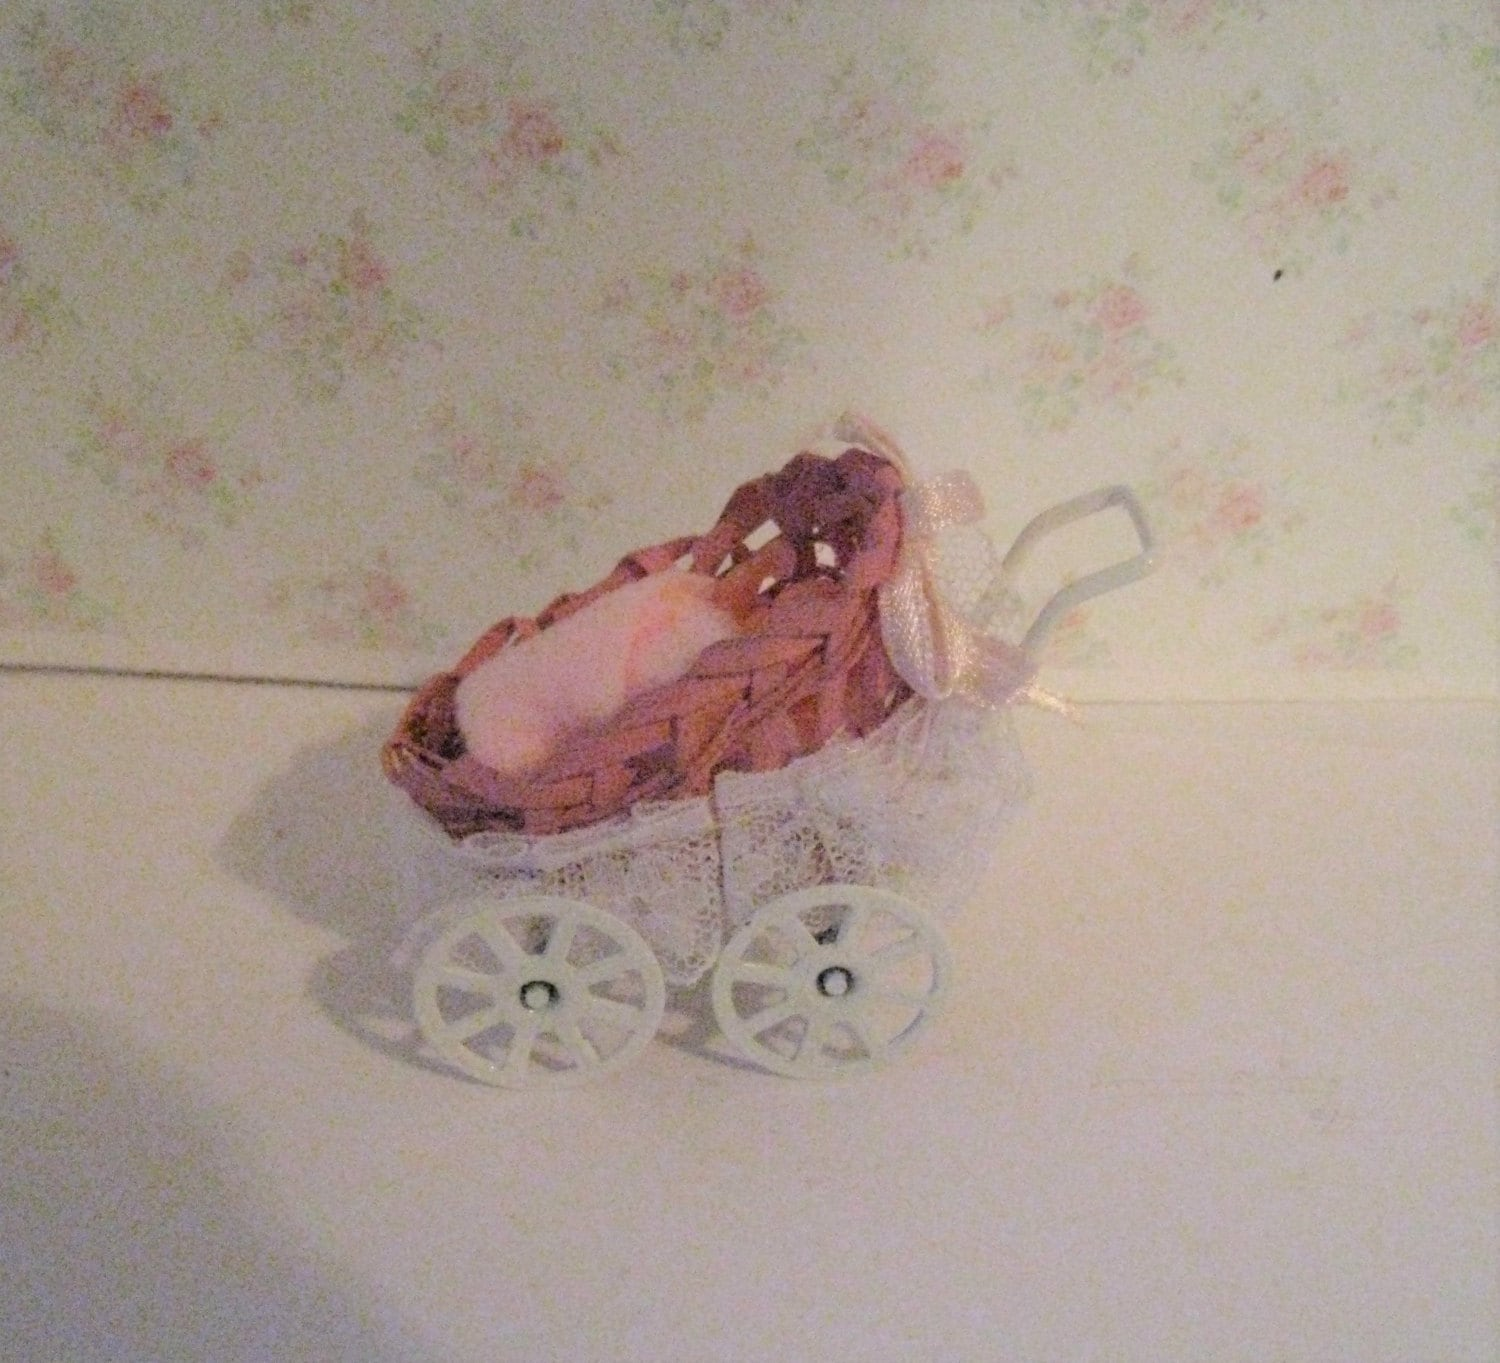 Dollhouse nursery buggy  Dolly buggy dolly carriage   Nursery Buggy twelfth scale cradle